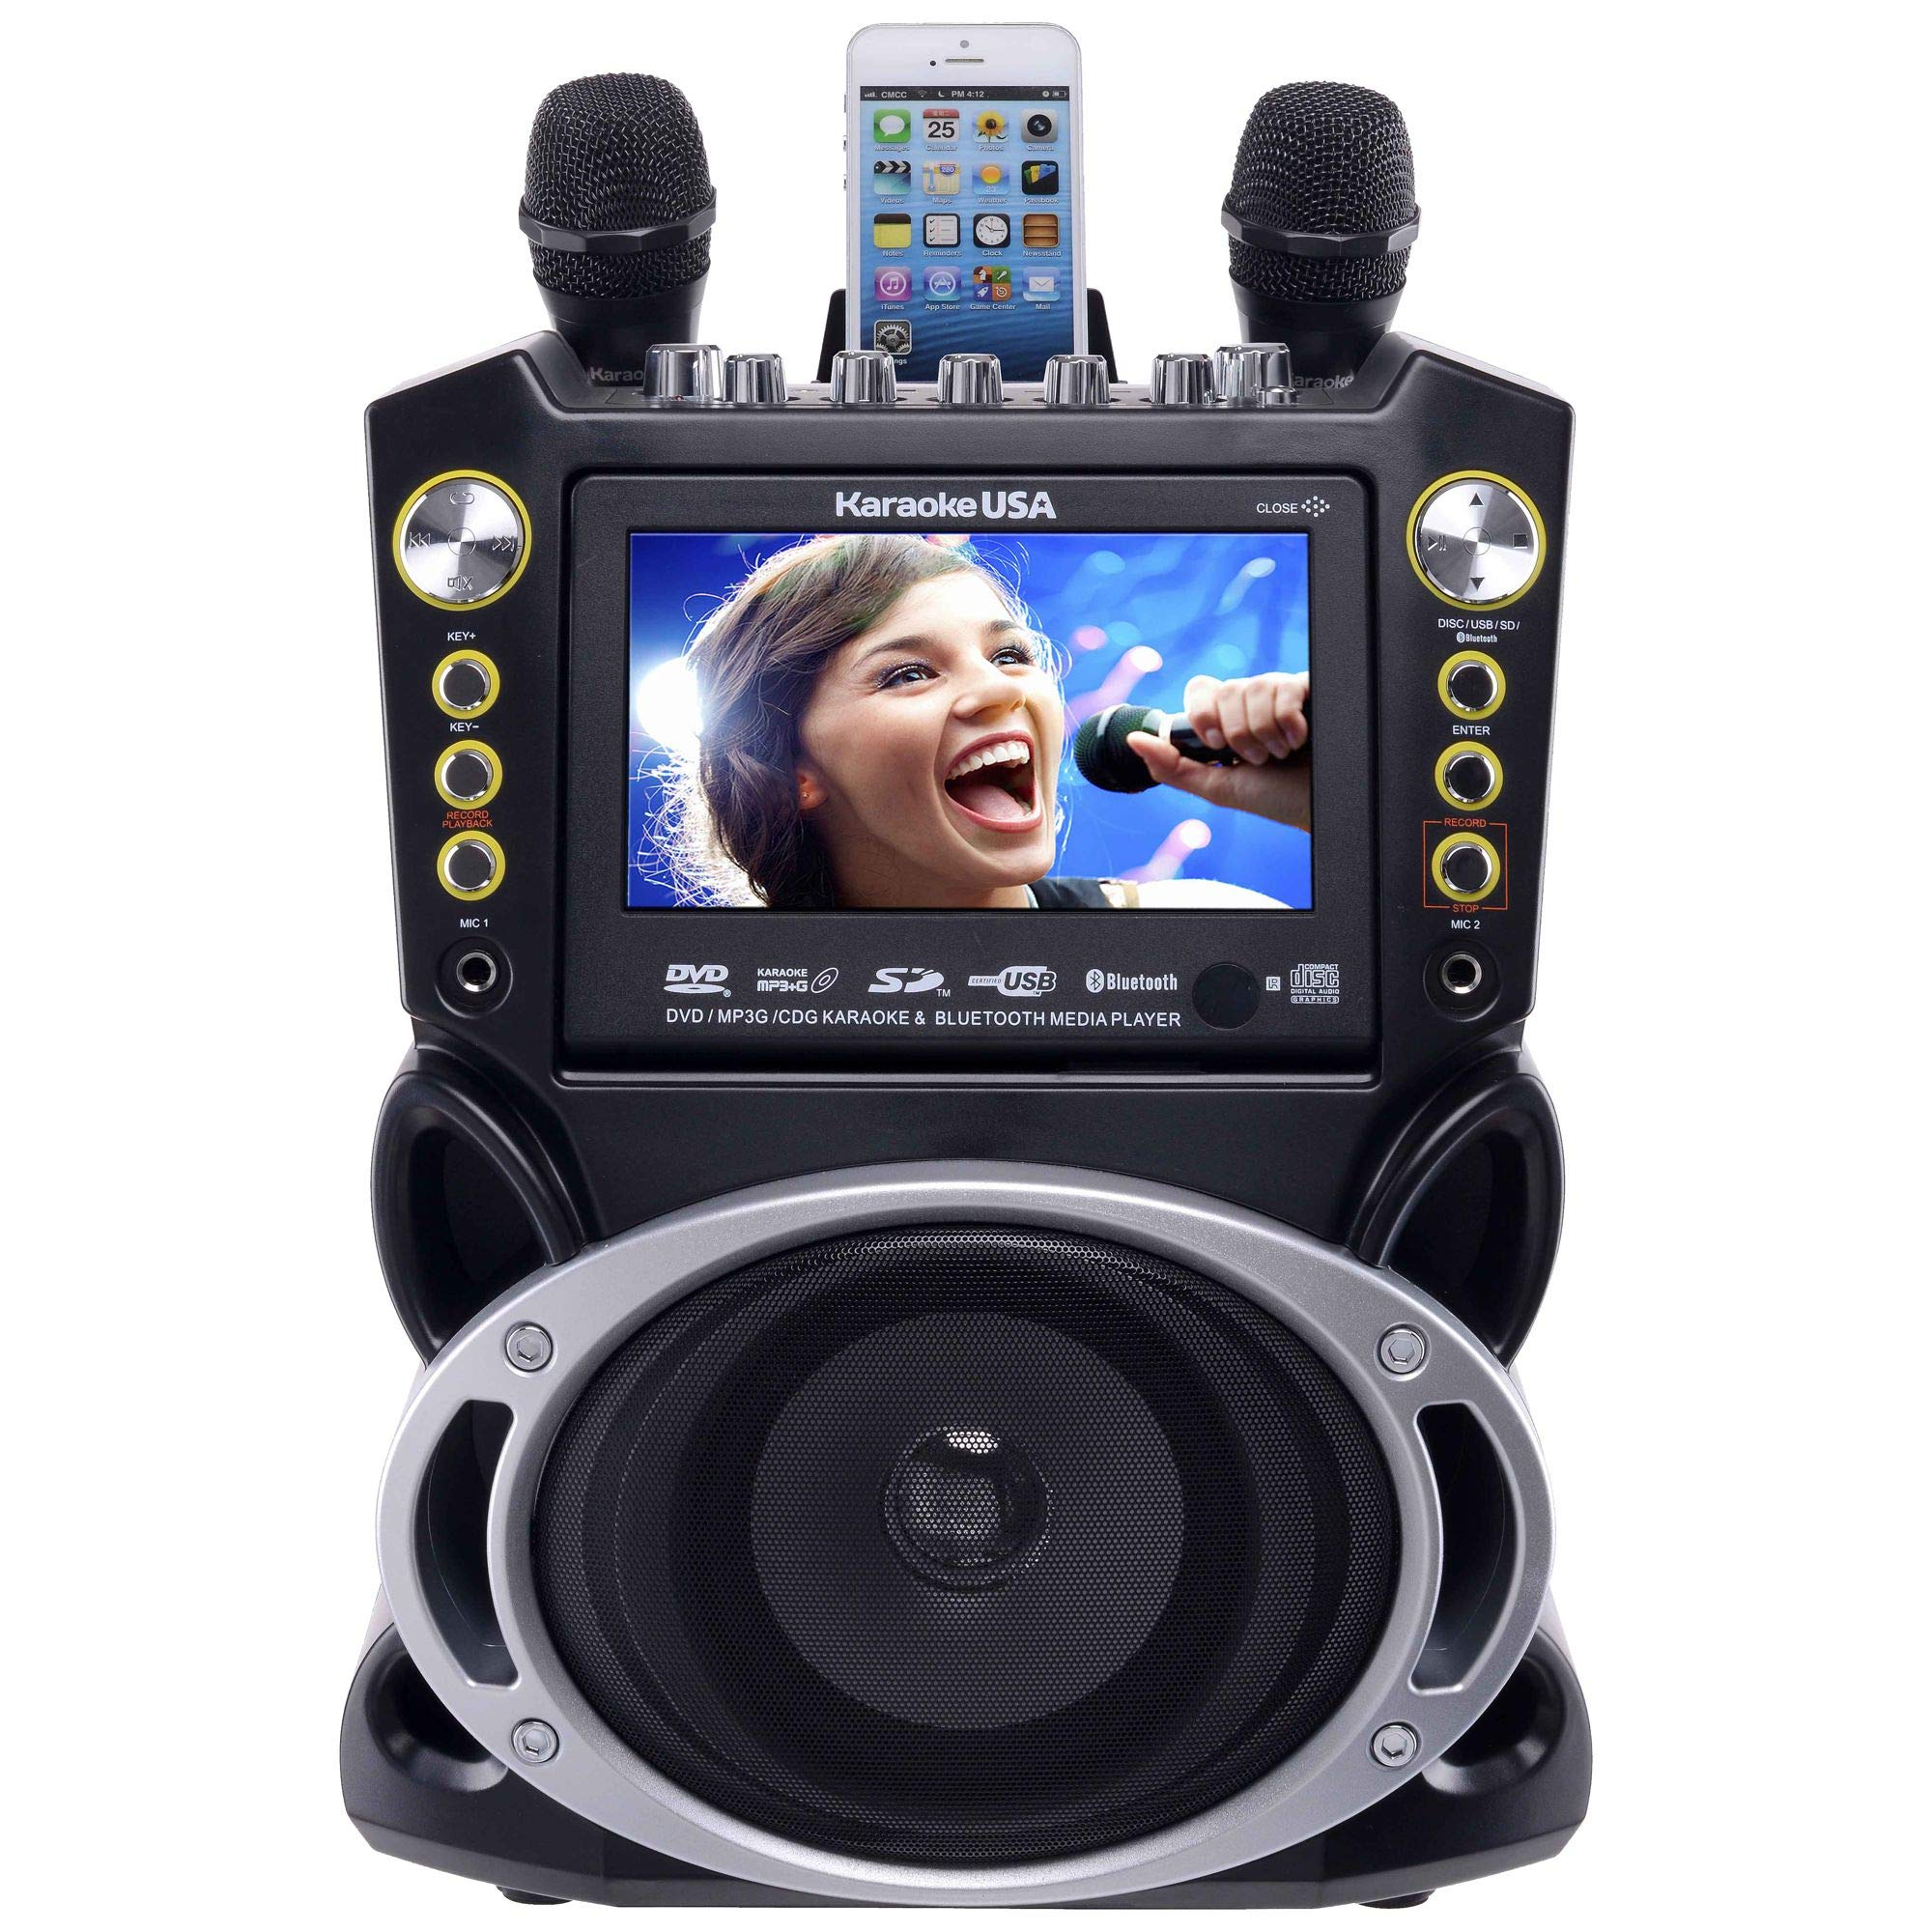 Karaoke USA GF844 Complete Karaoke System with 2 Microphones, Remote Control, 7'' Color Screen, LED Lights - Works with DVD, Bluetooth, CD, MP3 and All Devices